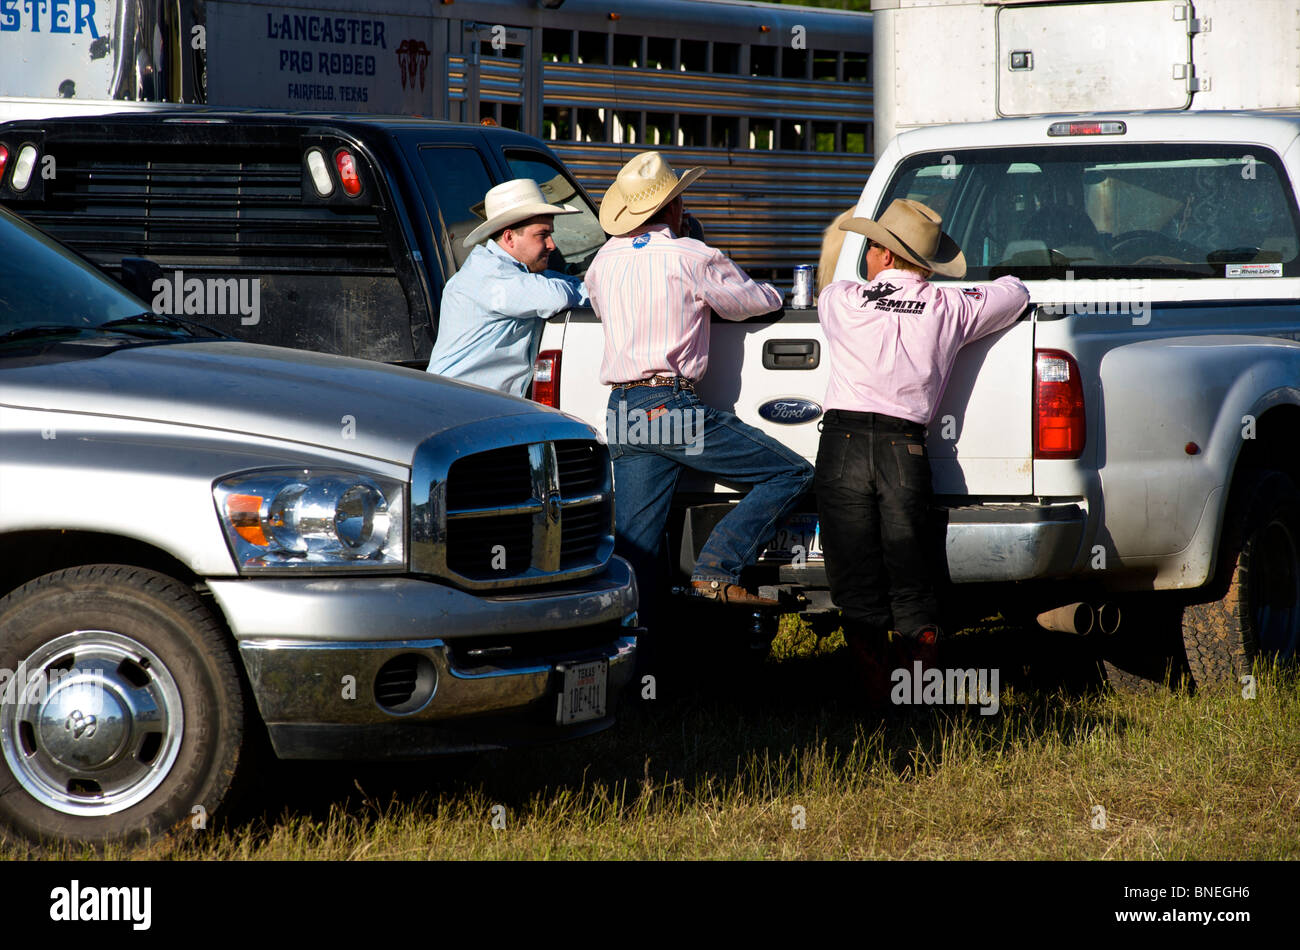 Cowboy members of PRCA gathered for rodeo event in Bridgeport, Texas, USA - Stock Image